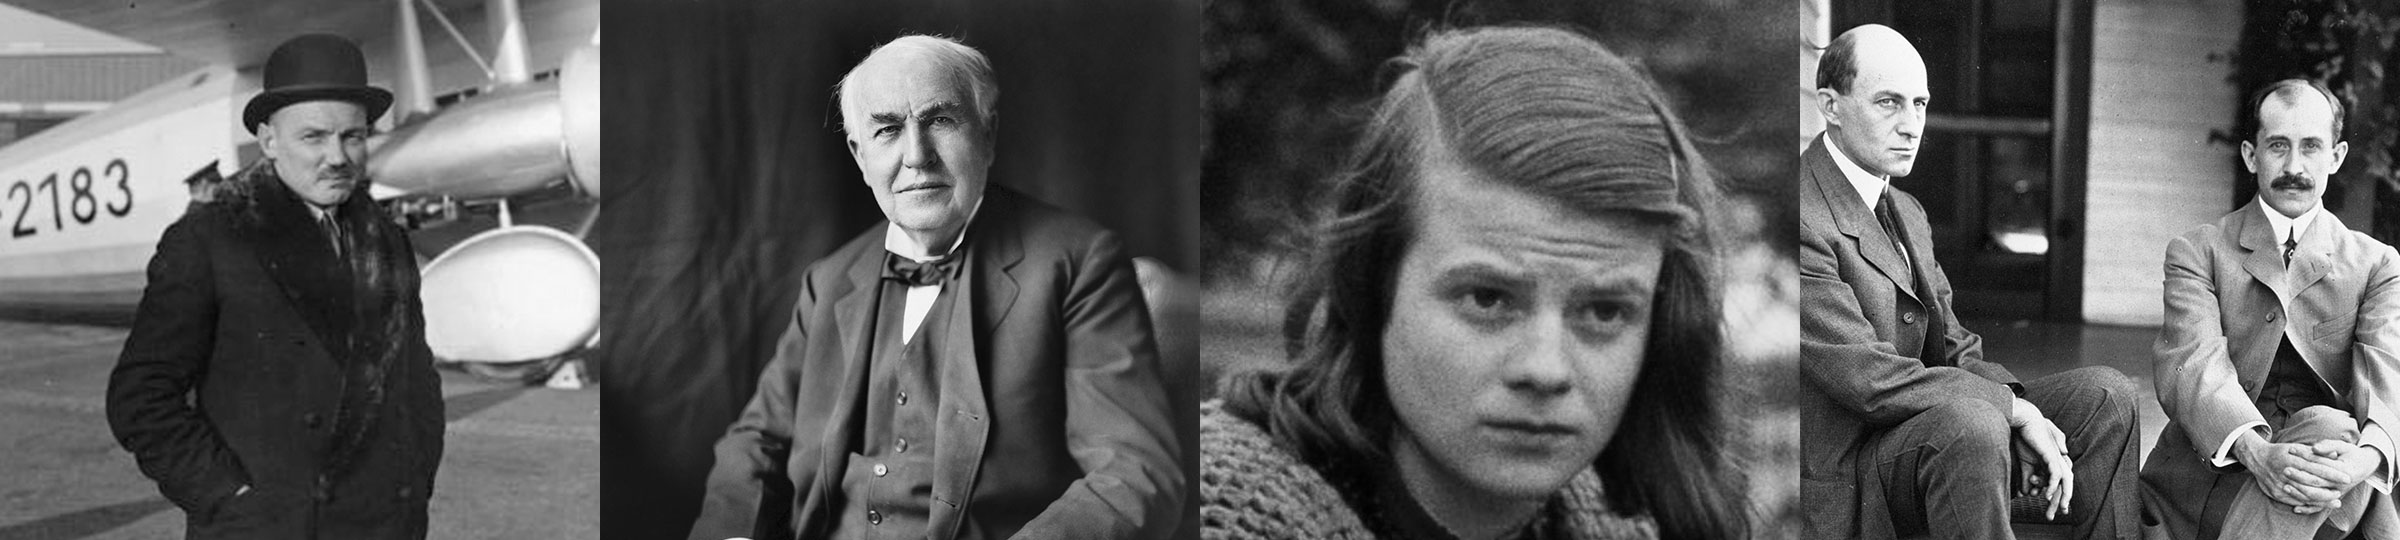 Claude Dornier, Thomas Edison, Sophie Scholl, Wright Brothers